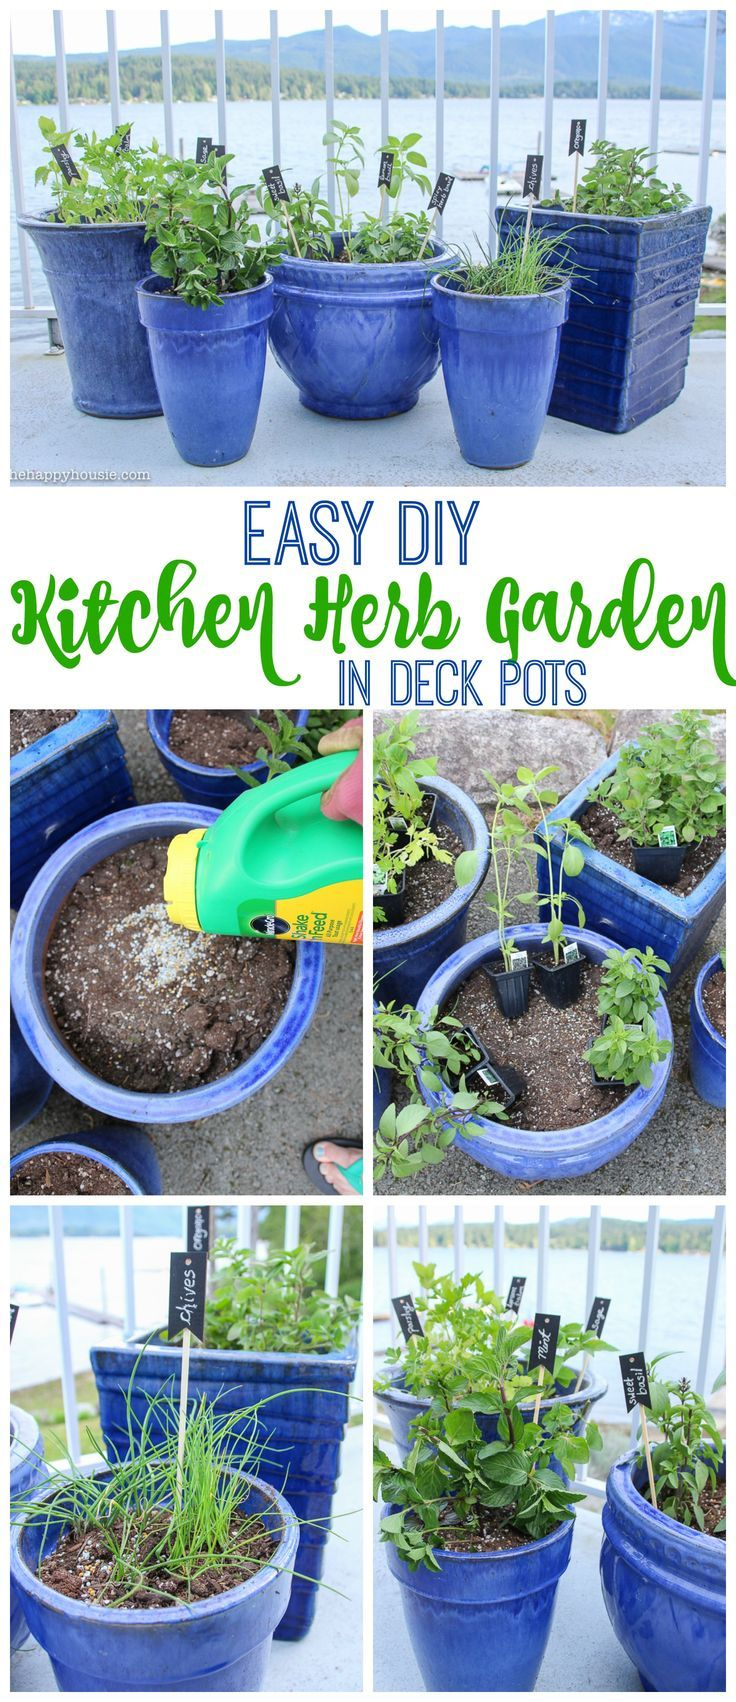 Easy DIY Kitchen Herb Garden in Deck Pots | Kitchen herb gardens ...